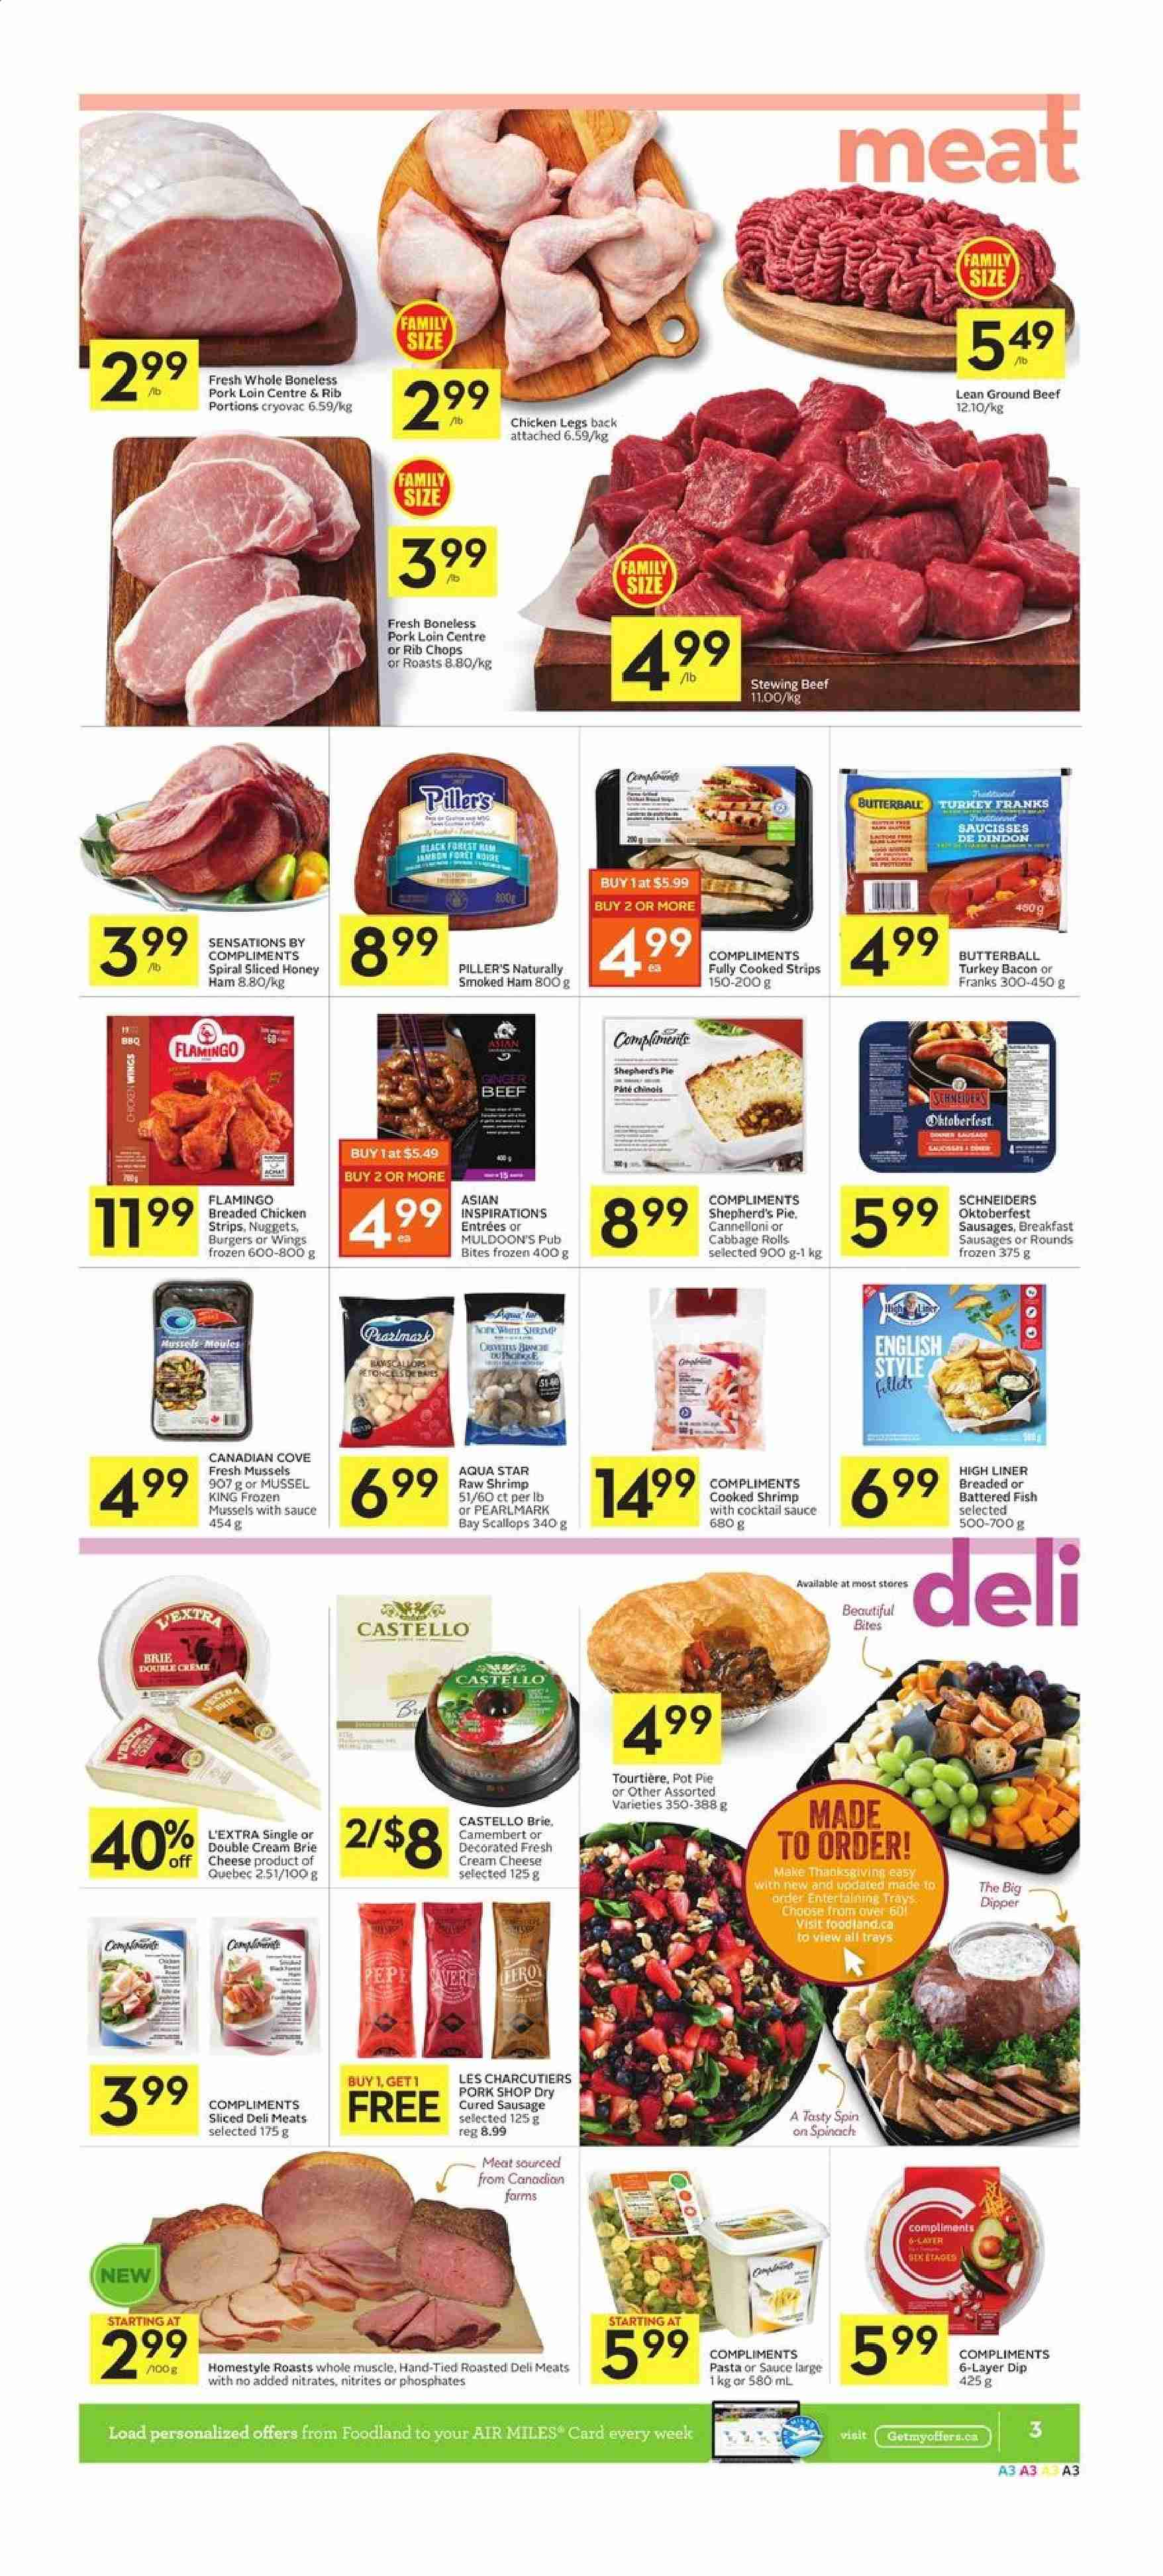 Foodland Flyer  - October 03, 2019 - October 09, 2019. Page 3.